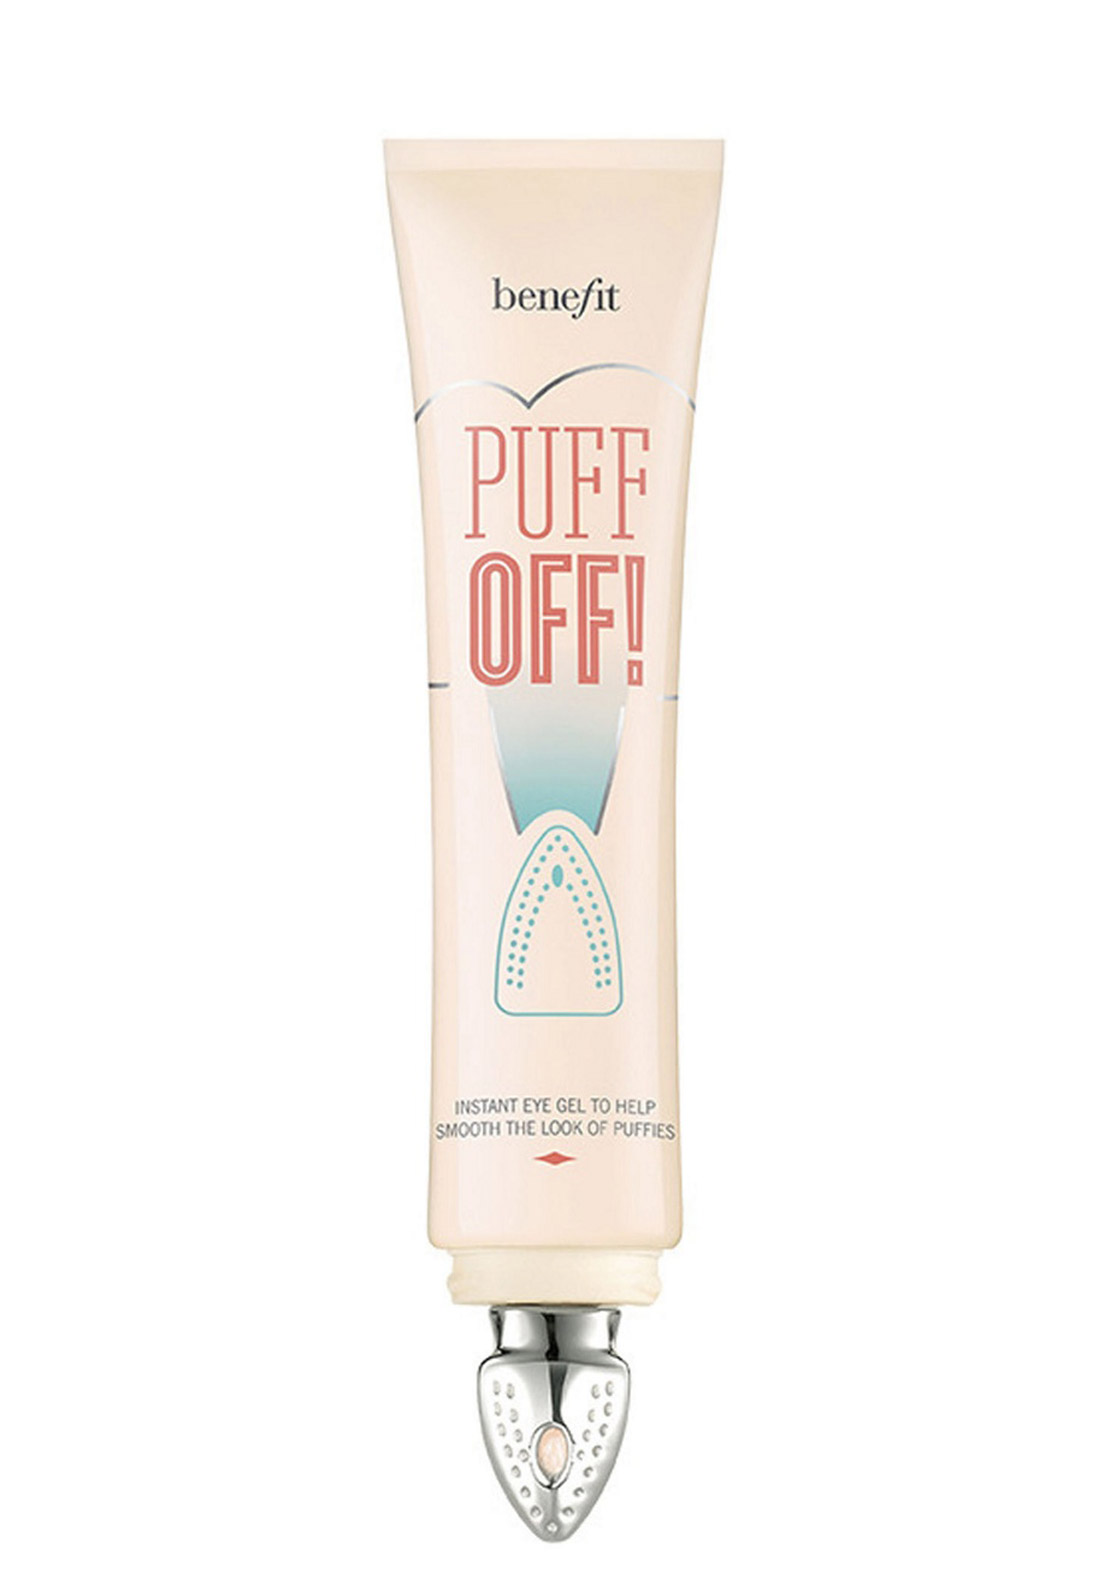 Benefit Puff Off! Eye Gel